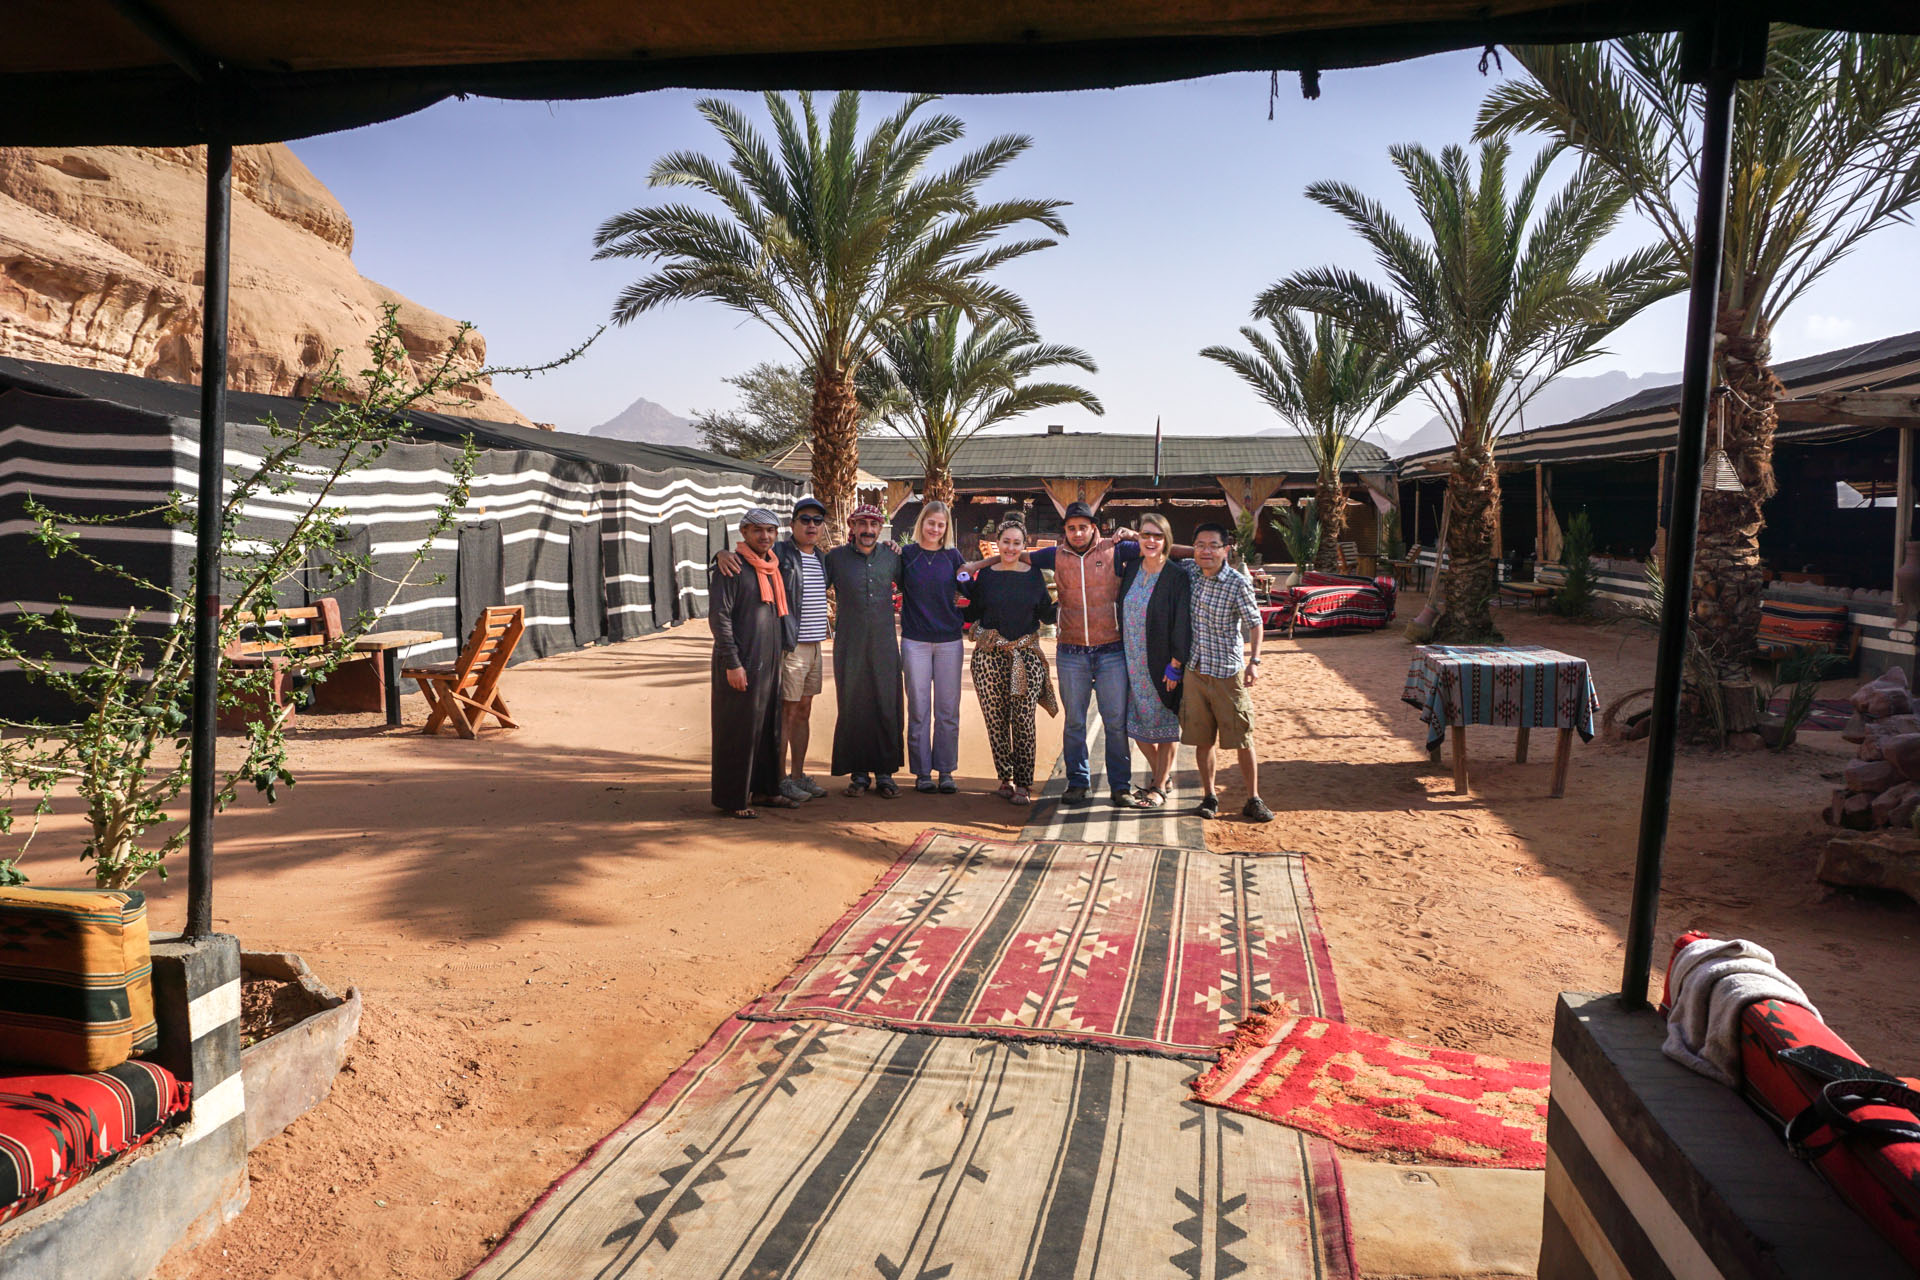 Jordanians are friendly and love engaging with tourists